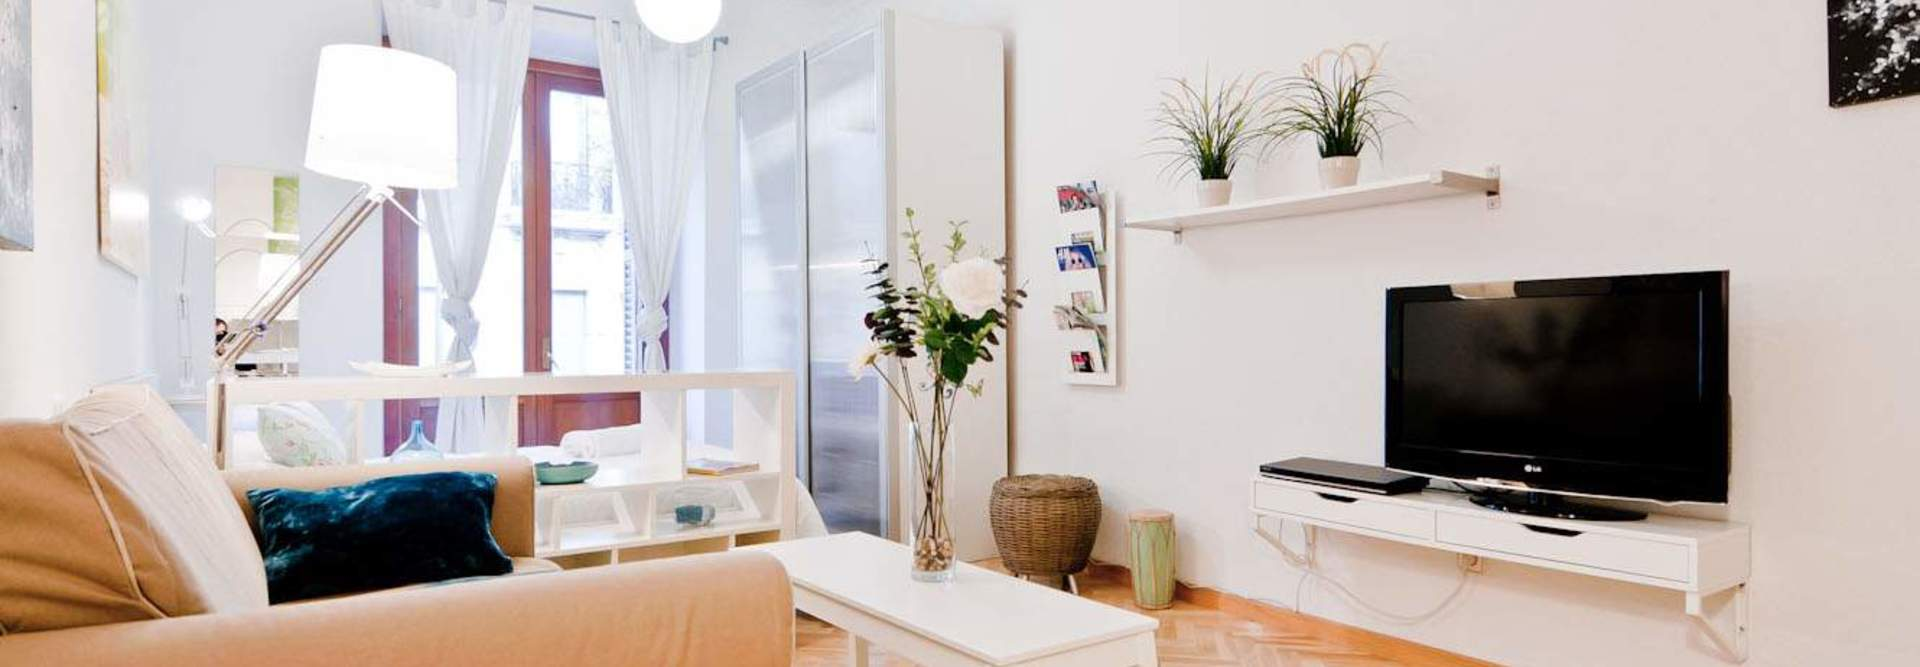 Home alquiler apartamento madrid centro mad4rent  17